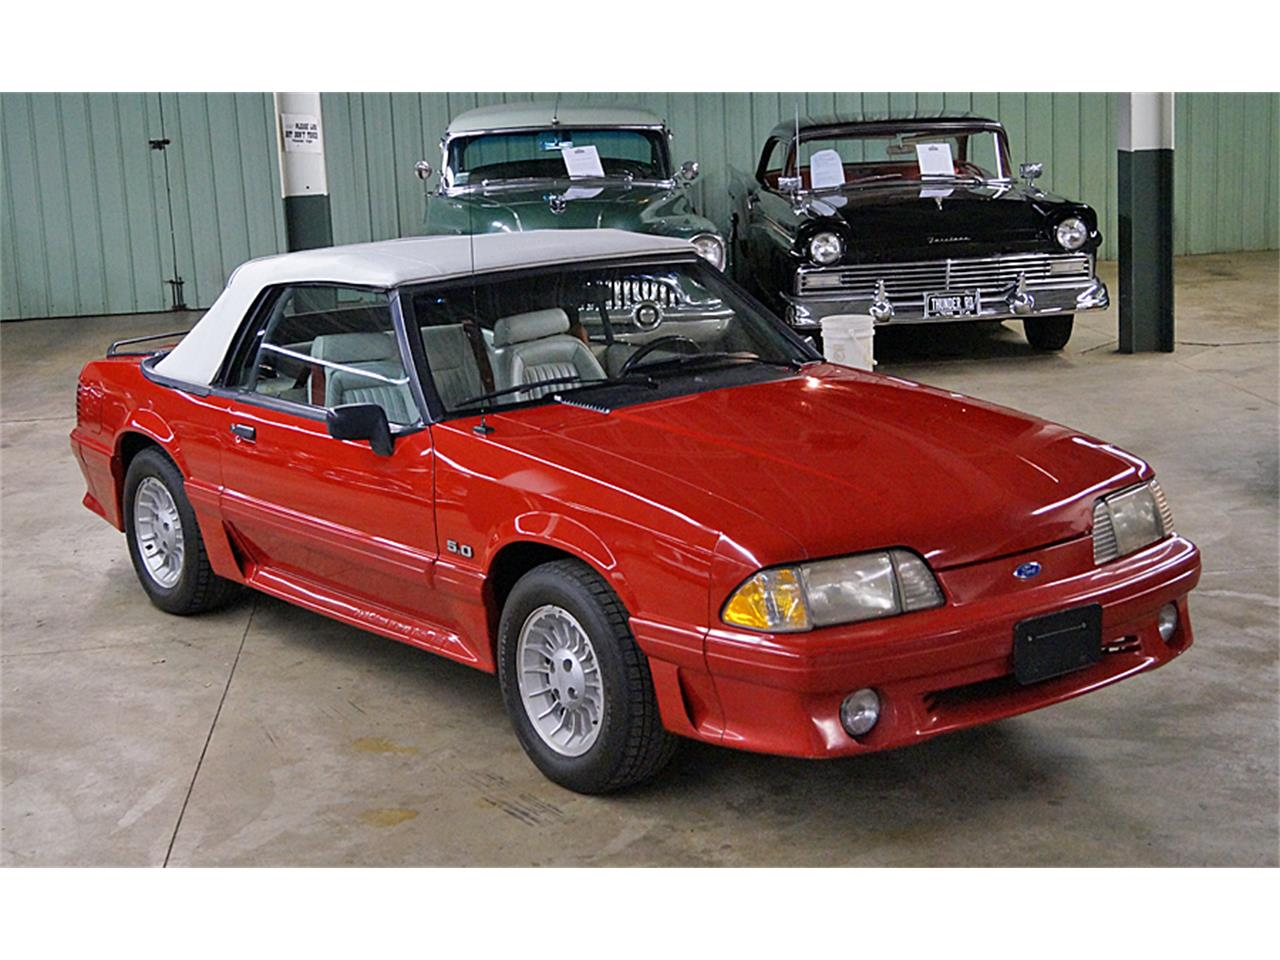 Large picture of 90 mustang gt oy3g